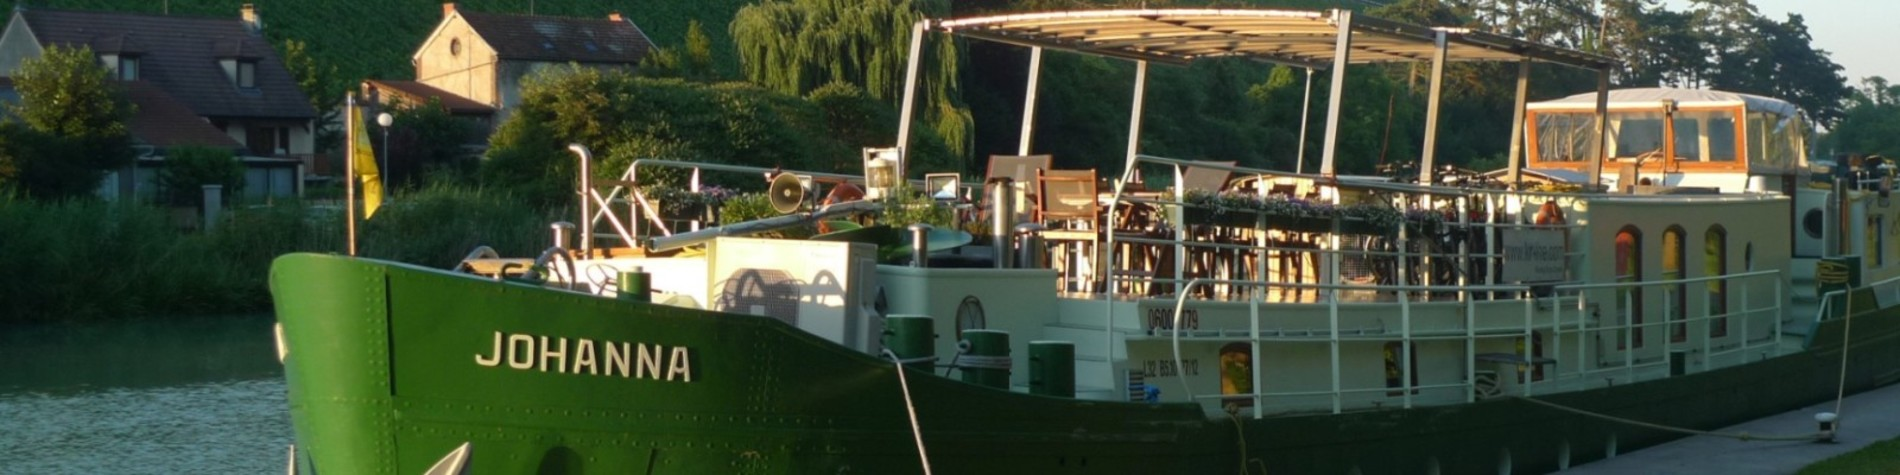 Barge Johanna moored in Marreuil sur Ay